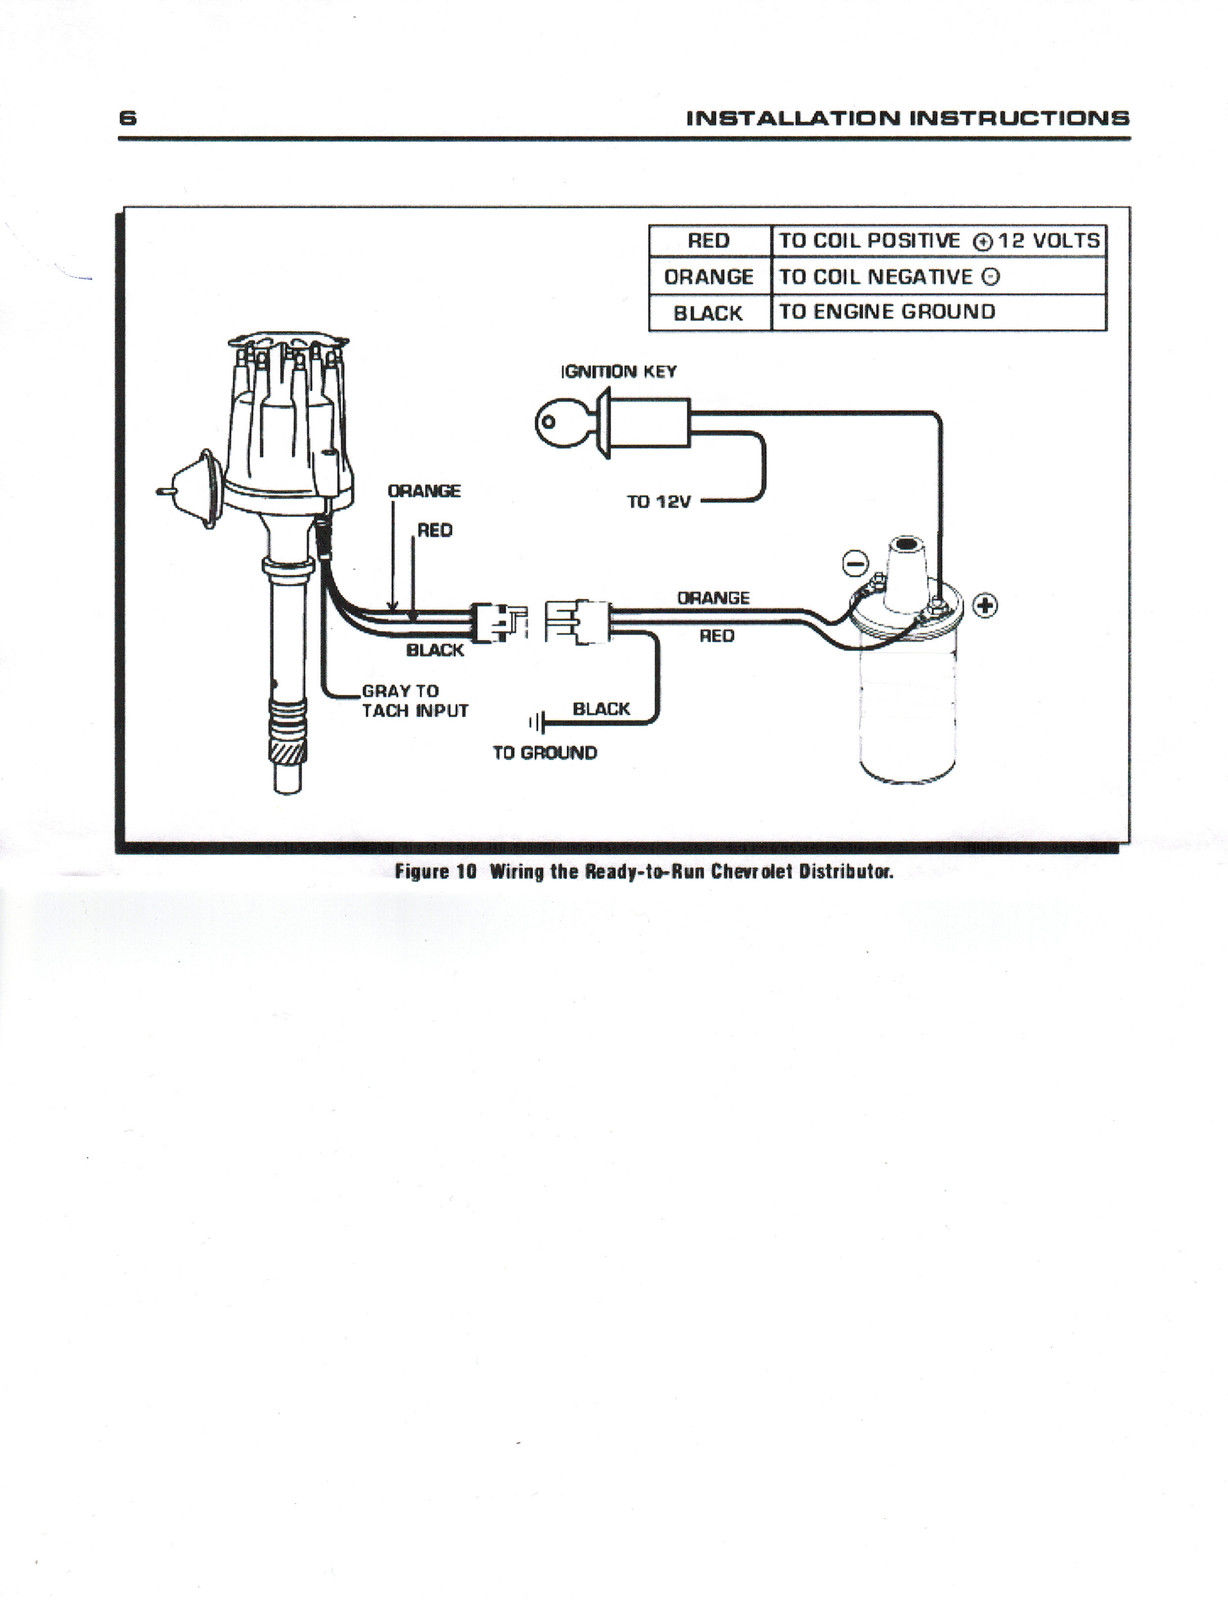 Small Cap Chevy Inline Cylinder Red Hei Distributor Plug Wires on 235 Chevy Electronic Distributor